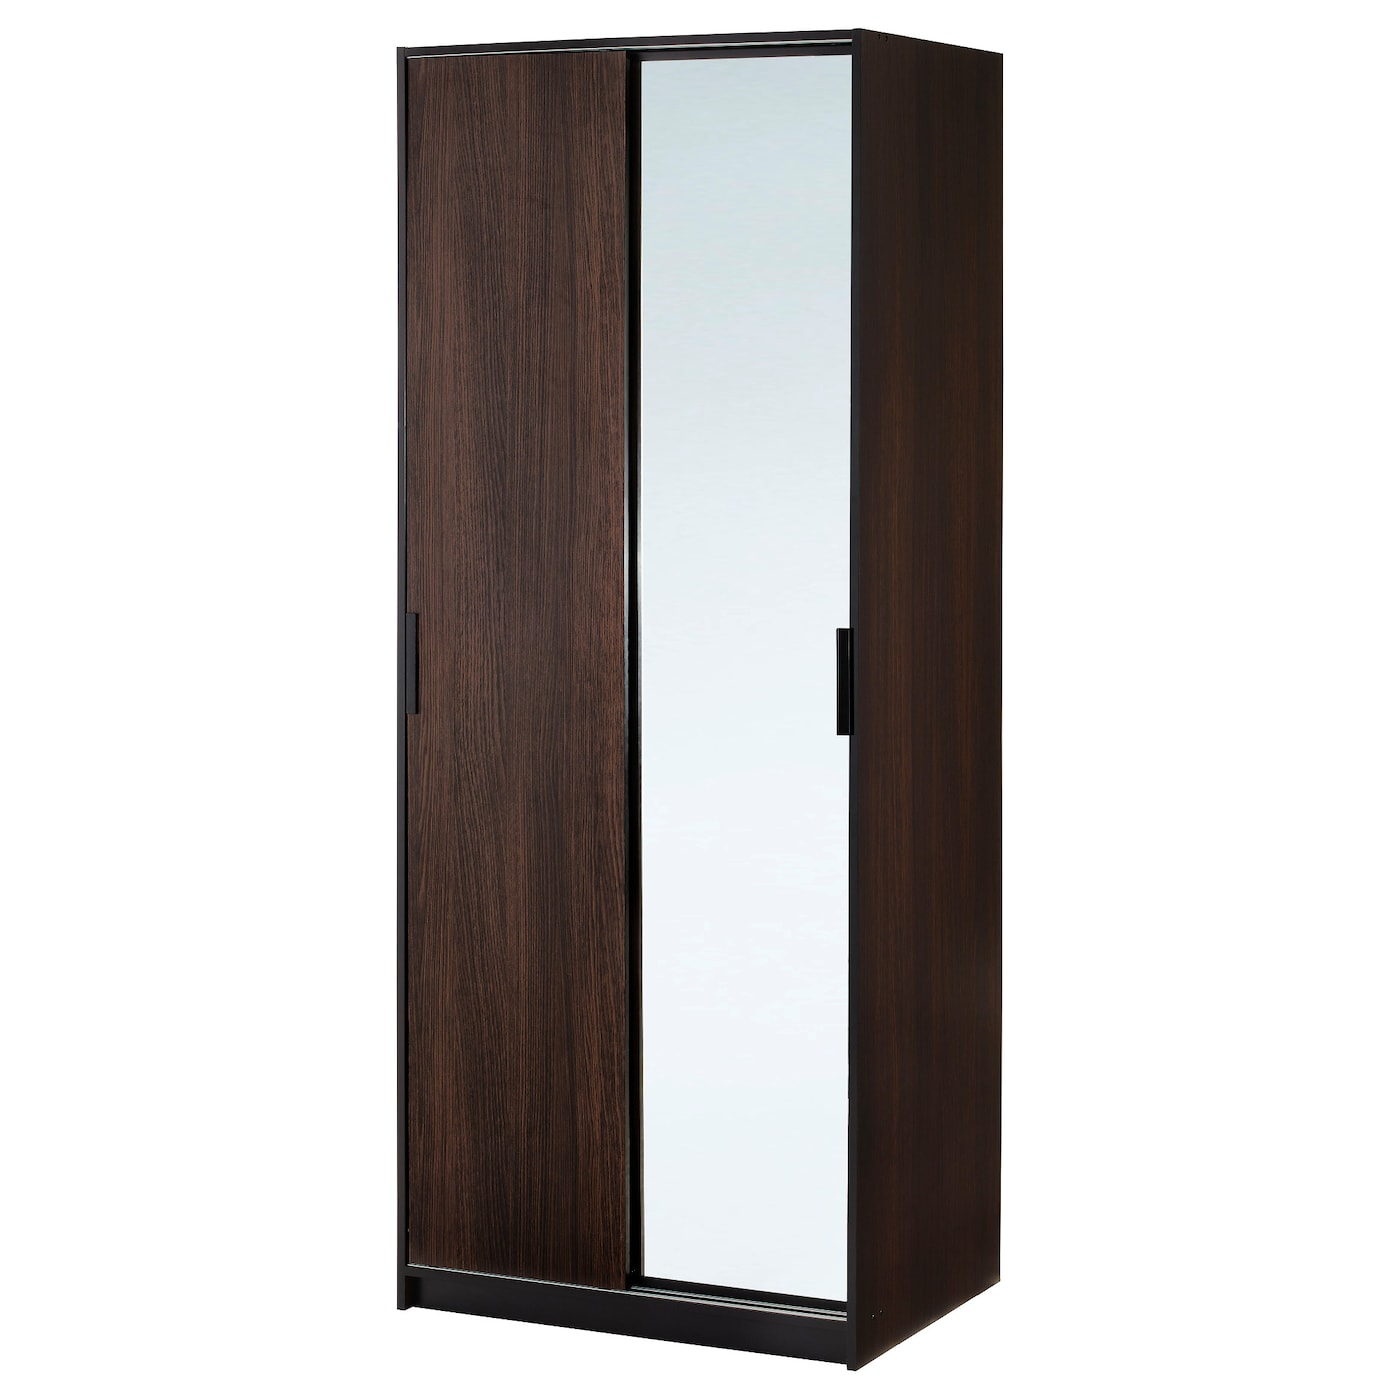 Ikea Schreibtisch Expedit Mit Regal ~ IKEA TRYSIL wardrobe You save space with a mirror door, because you